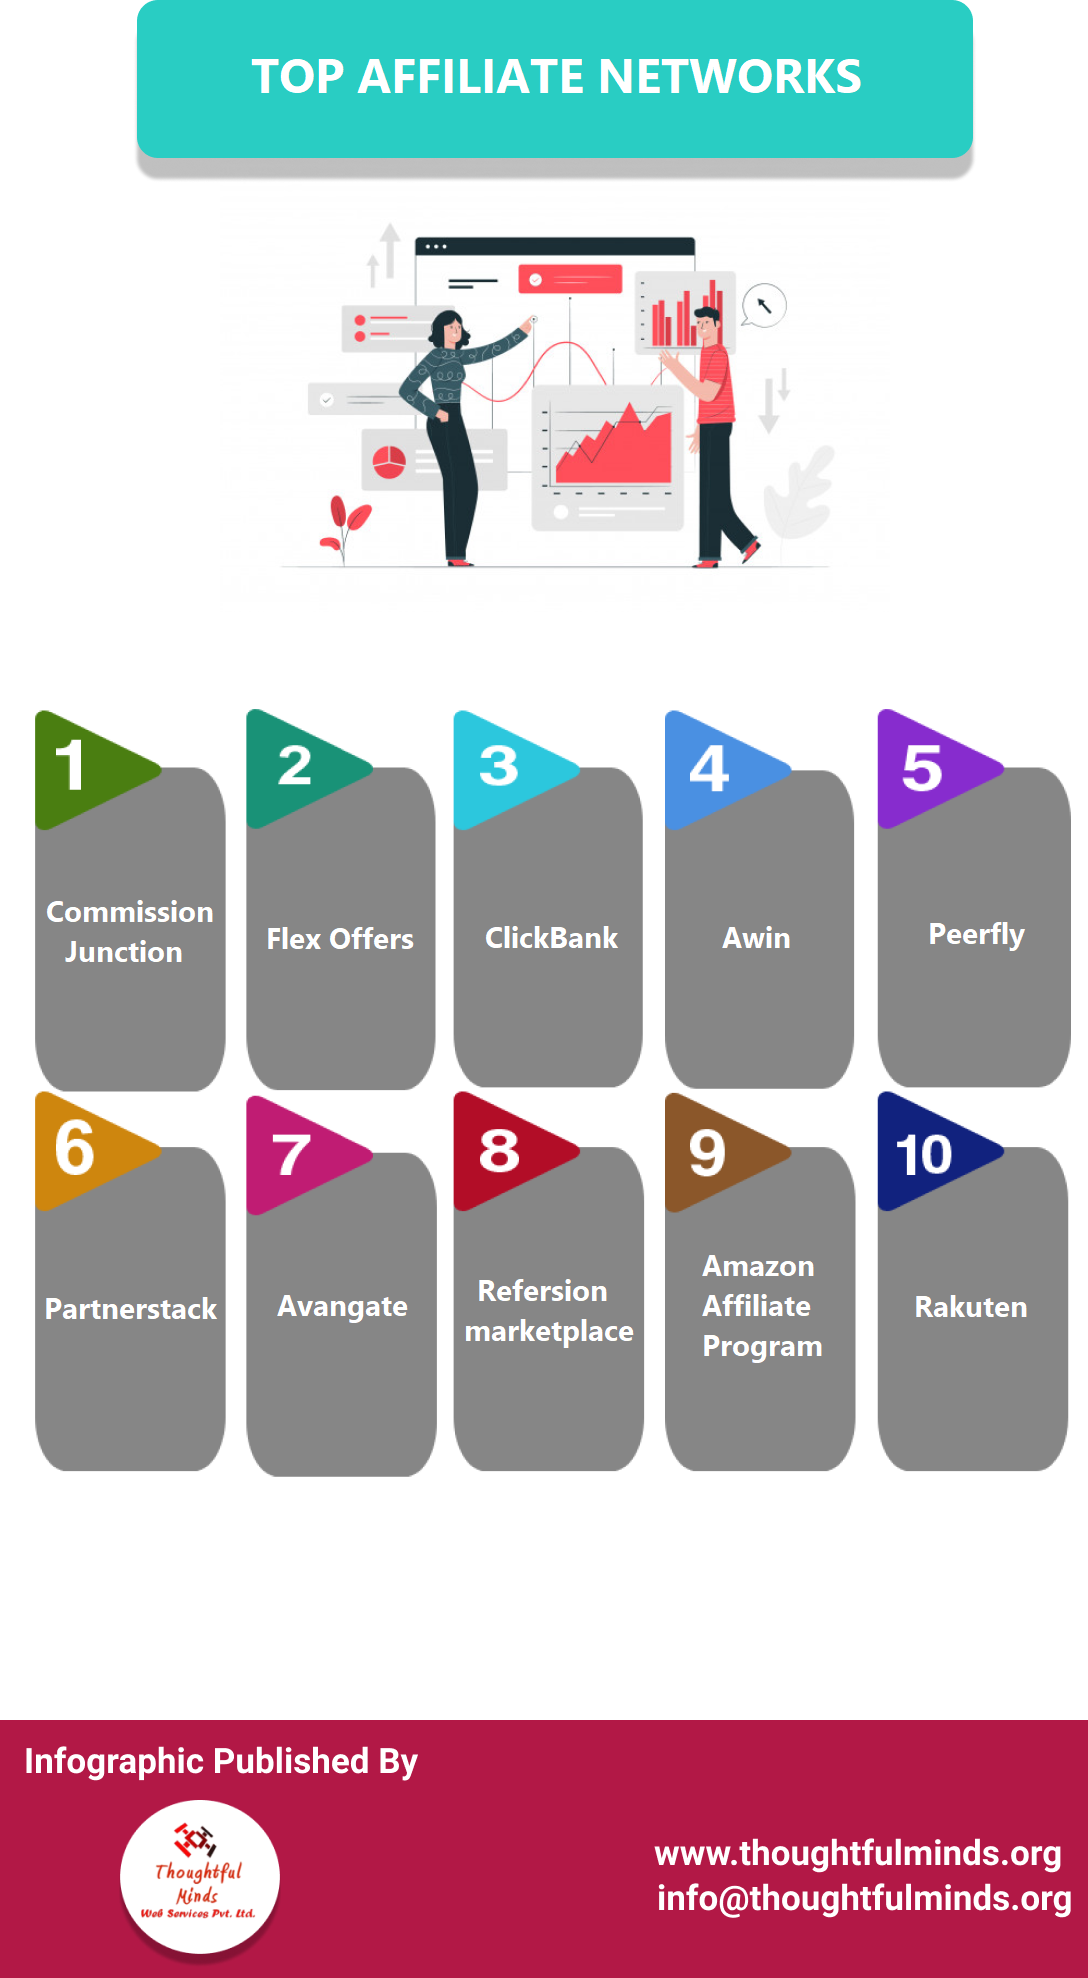 Infographic On Top Affiliate Networks - ThoughtfulMinds